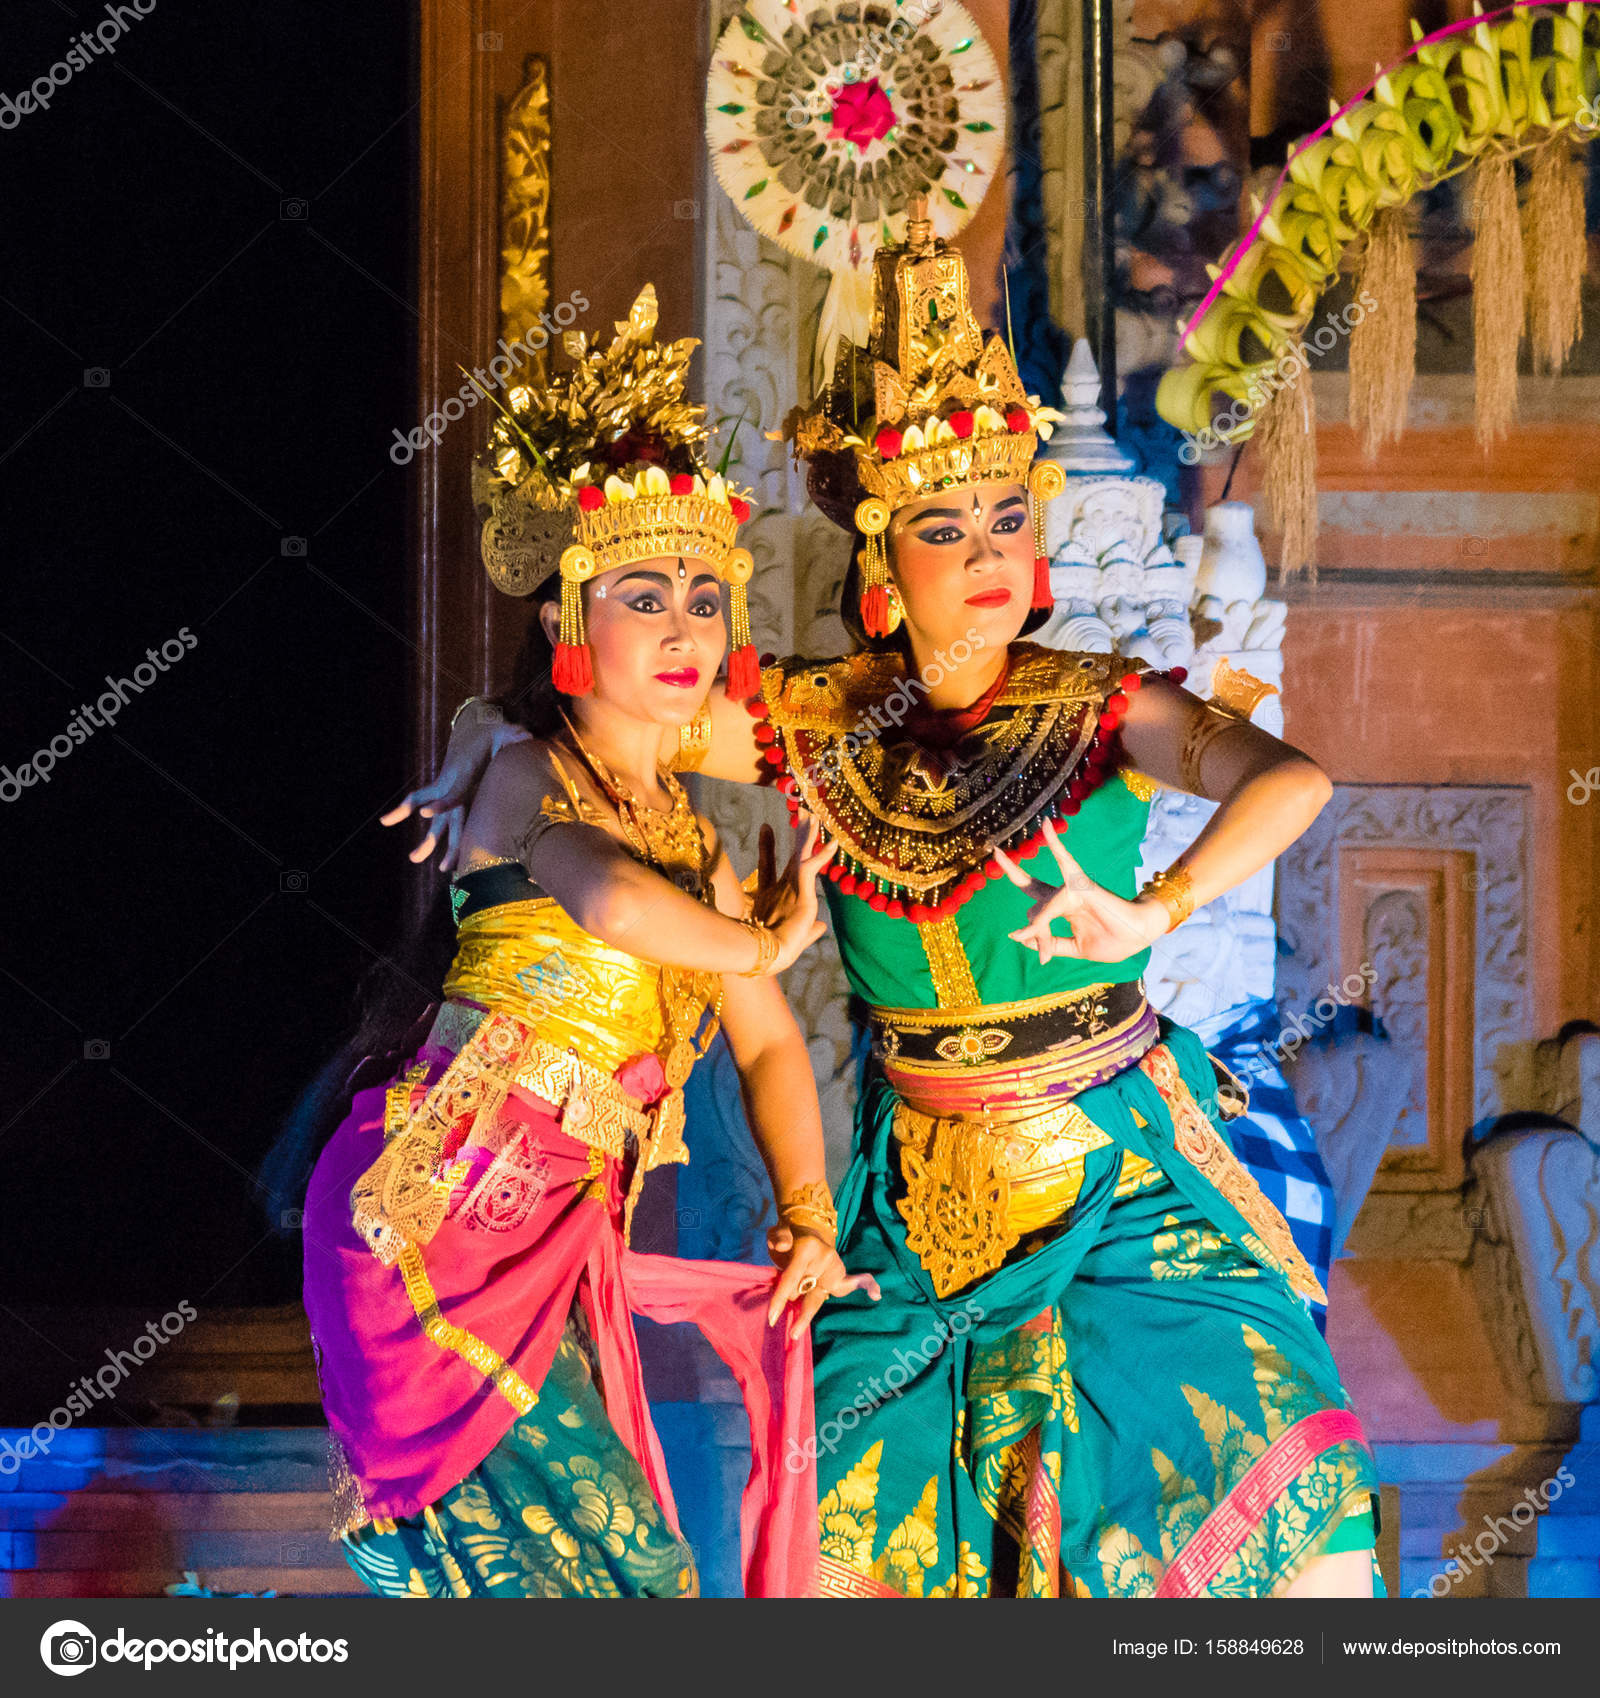 Bali dancers performing Ramayana Ballet at Ubud Royal Palace in Ubud, Bali, Indonesia